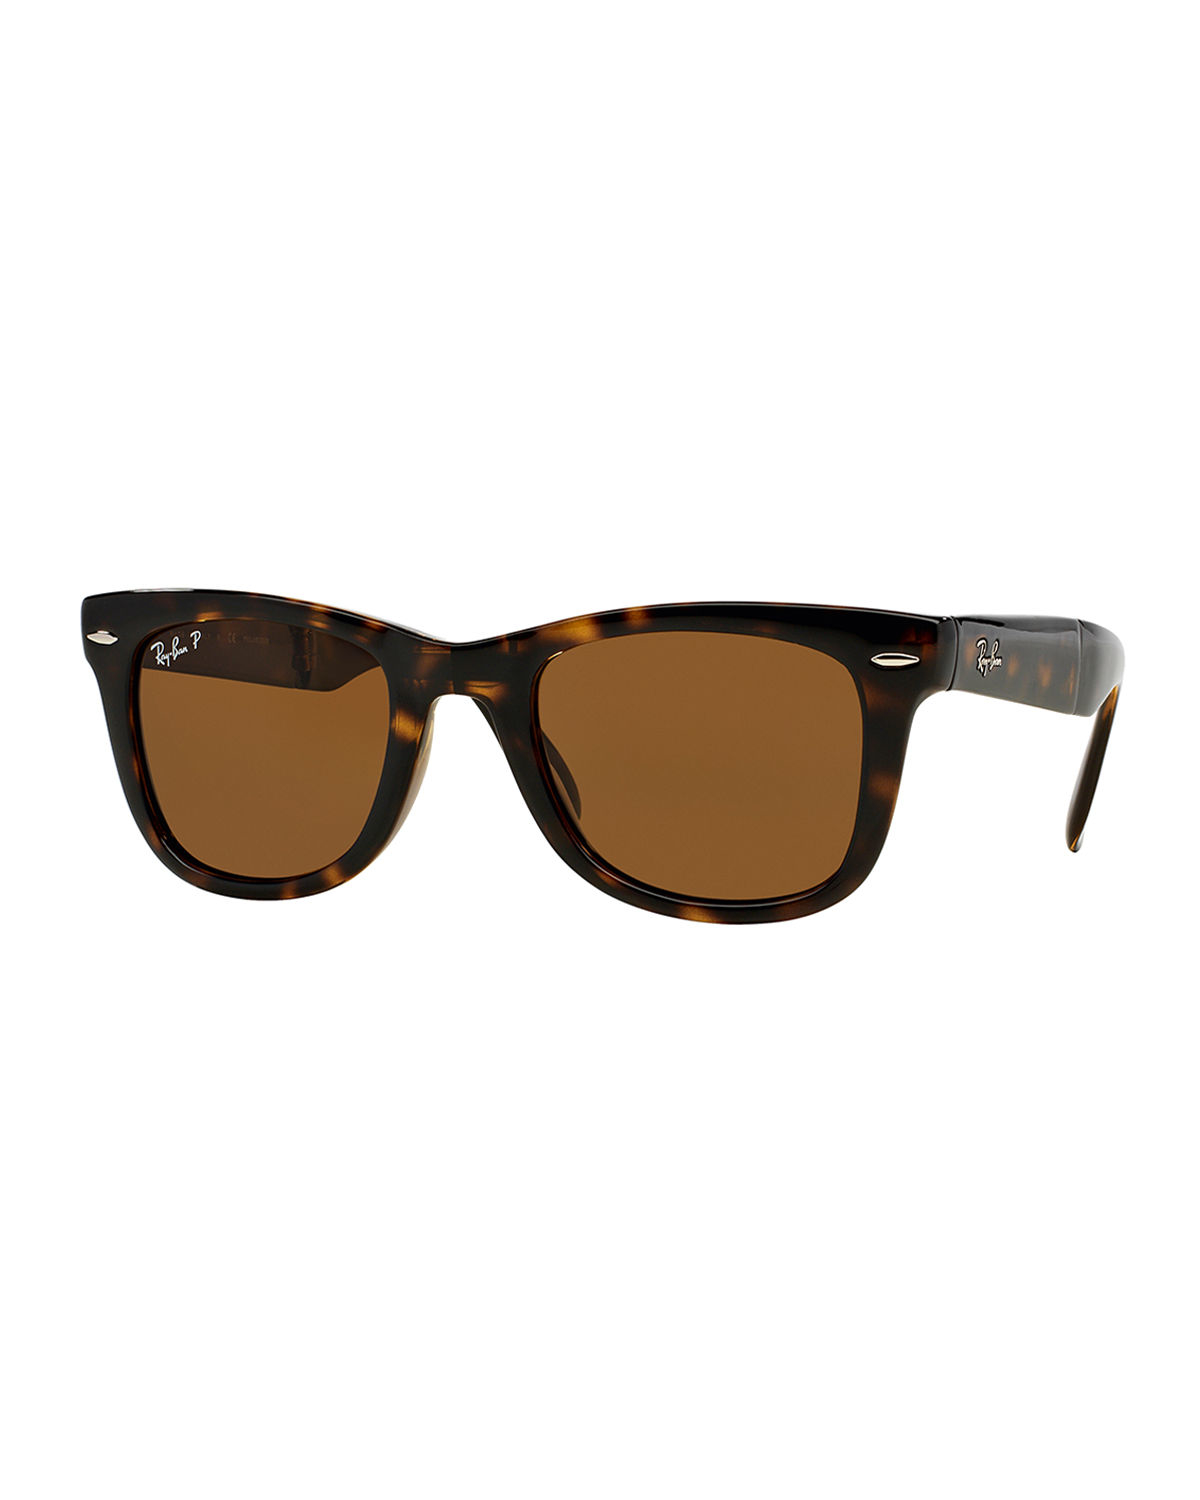 ray ban polarized wayfarer sunglasses in brown for men lyst. Black Bedroom Furniture Sets. Home Design Ideas